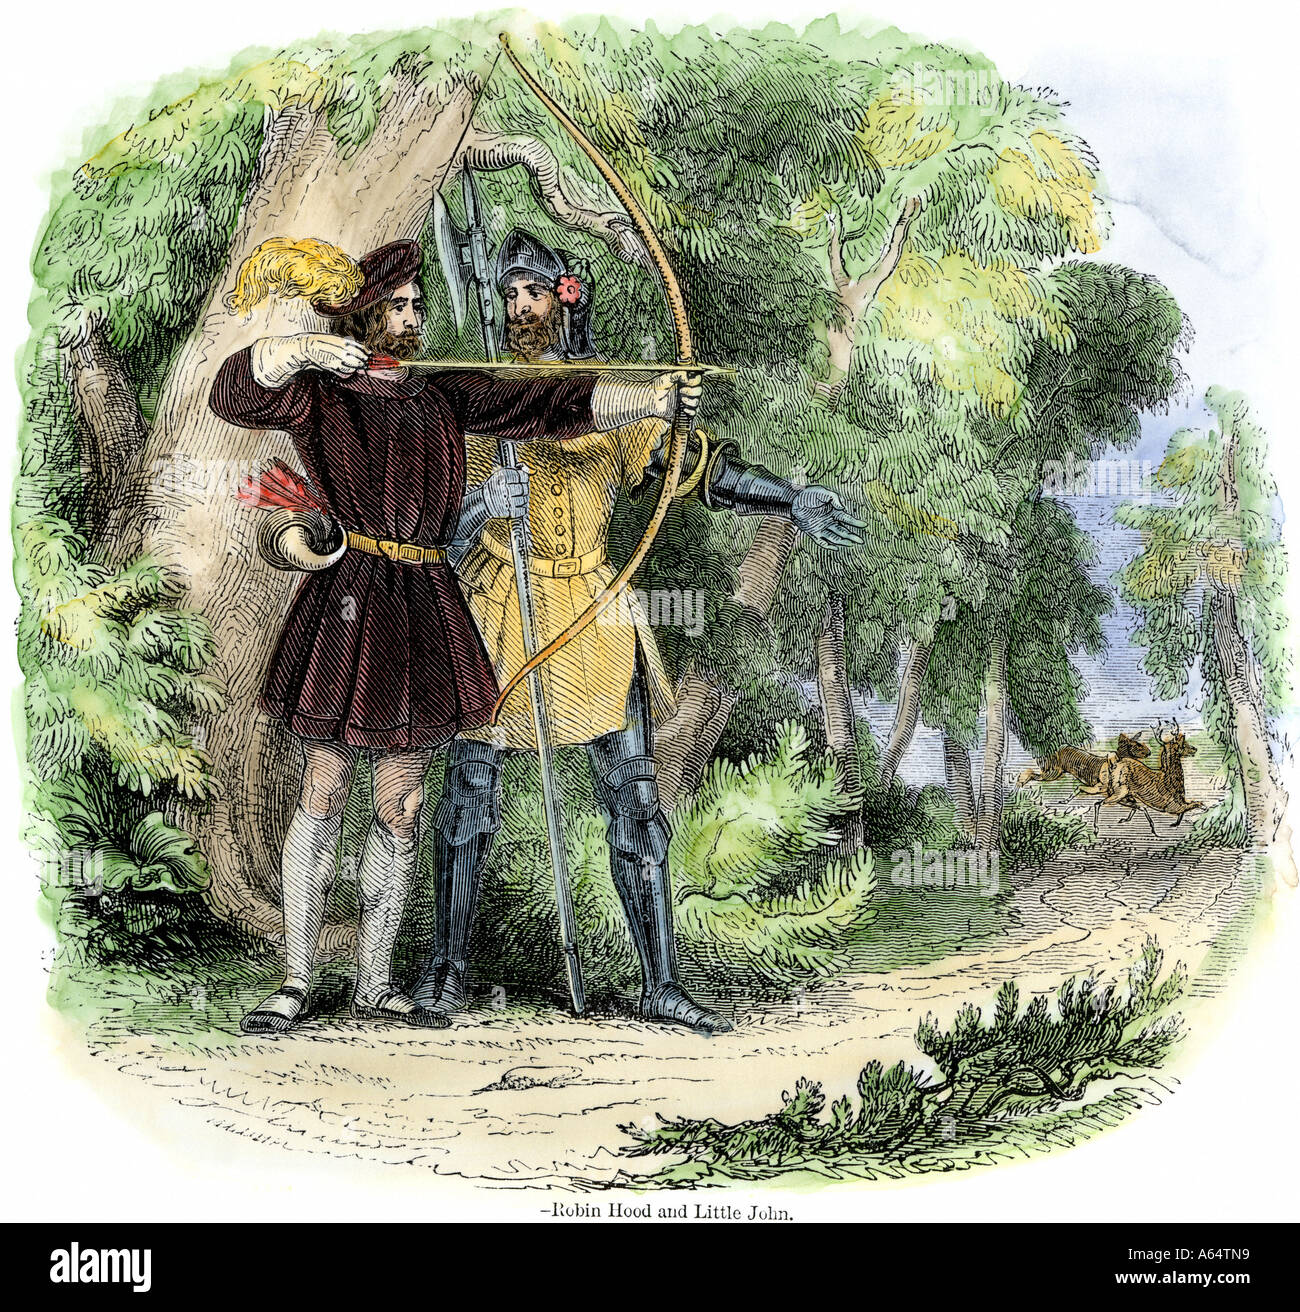 Robin Hood and Little John hunting deer in Sherwood Forest. Hand-colored woodcut - Stock Image